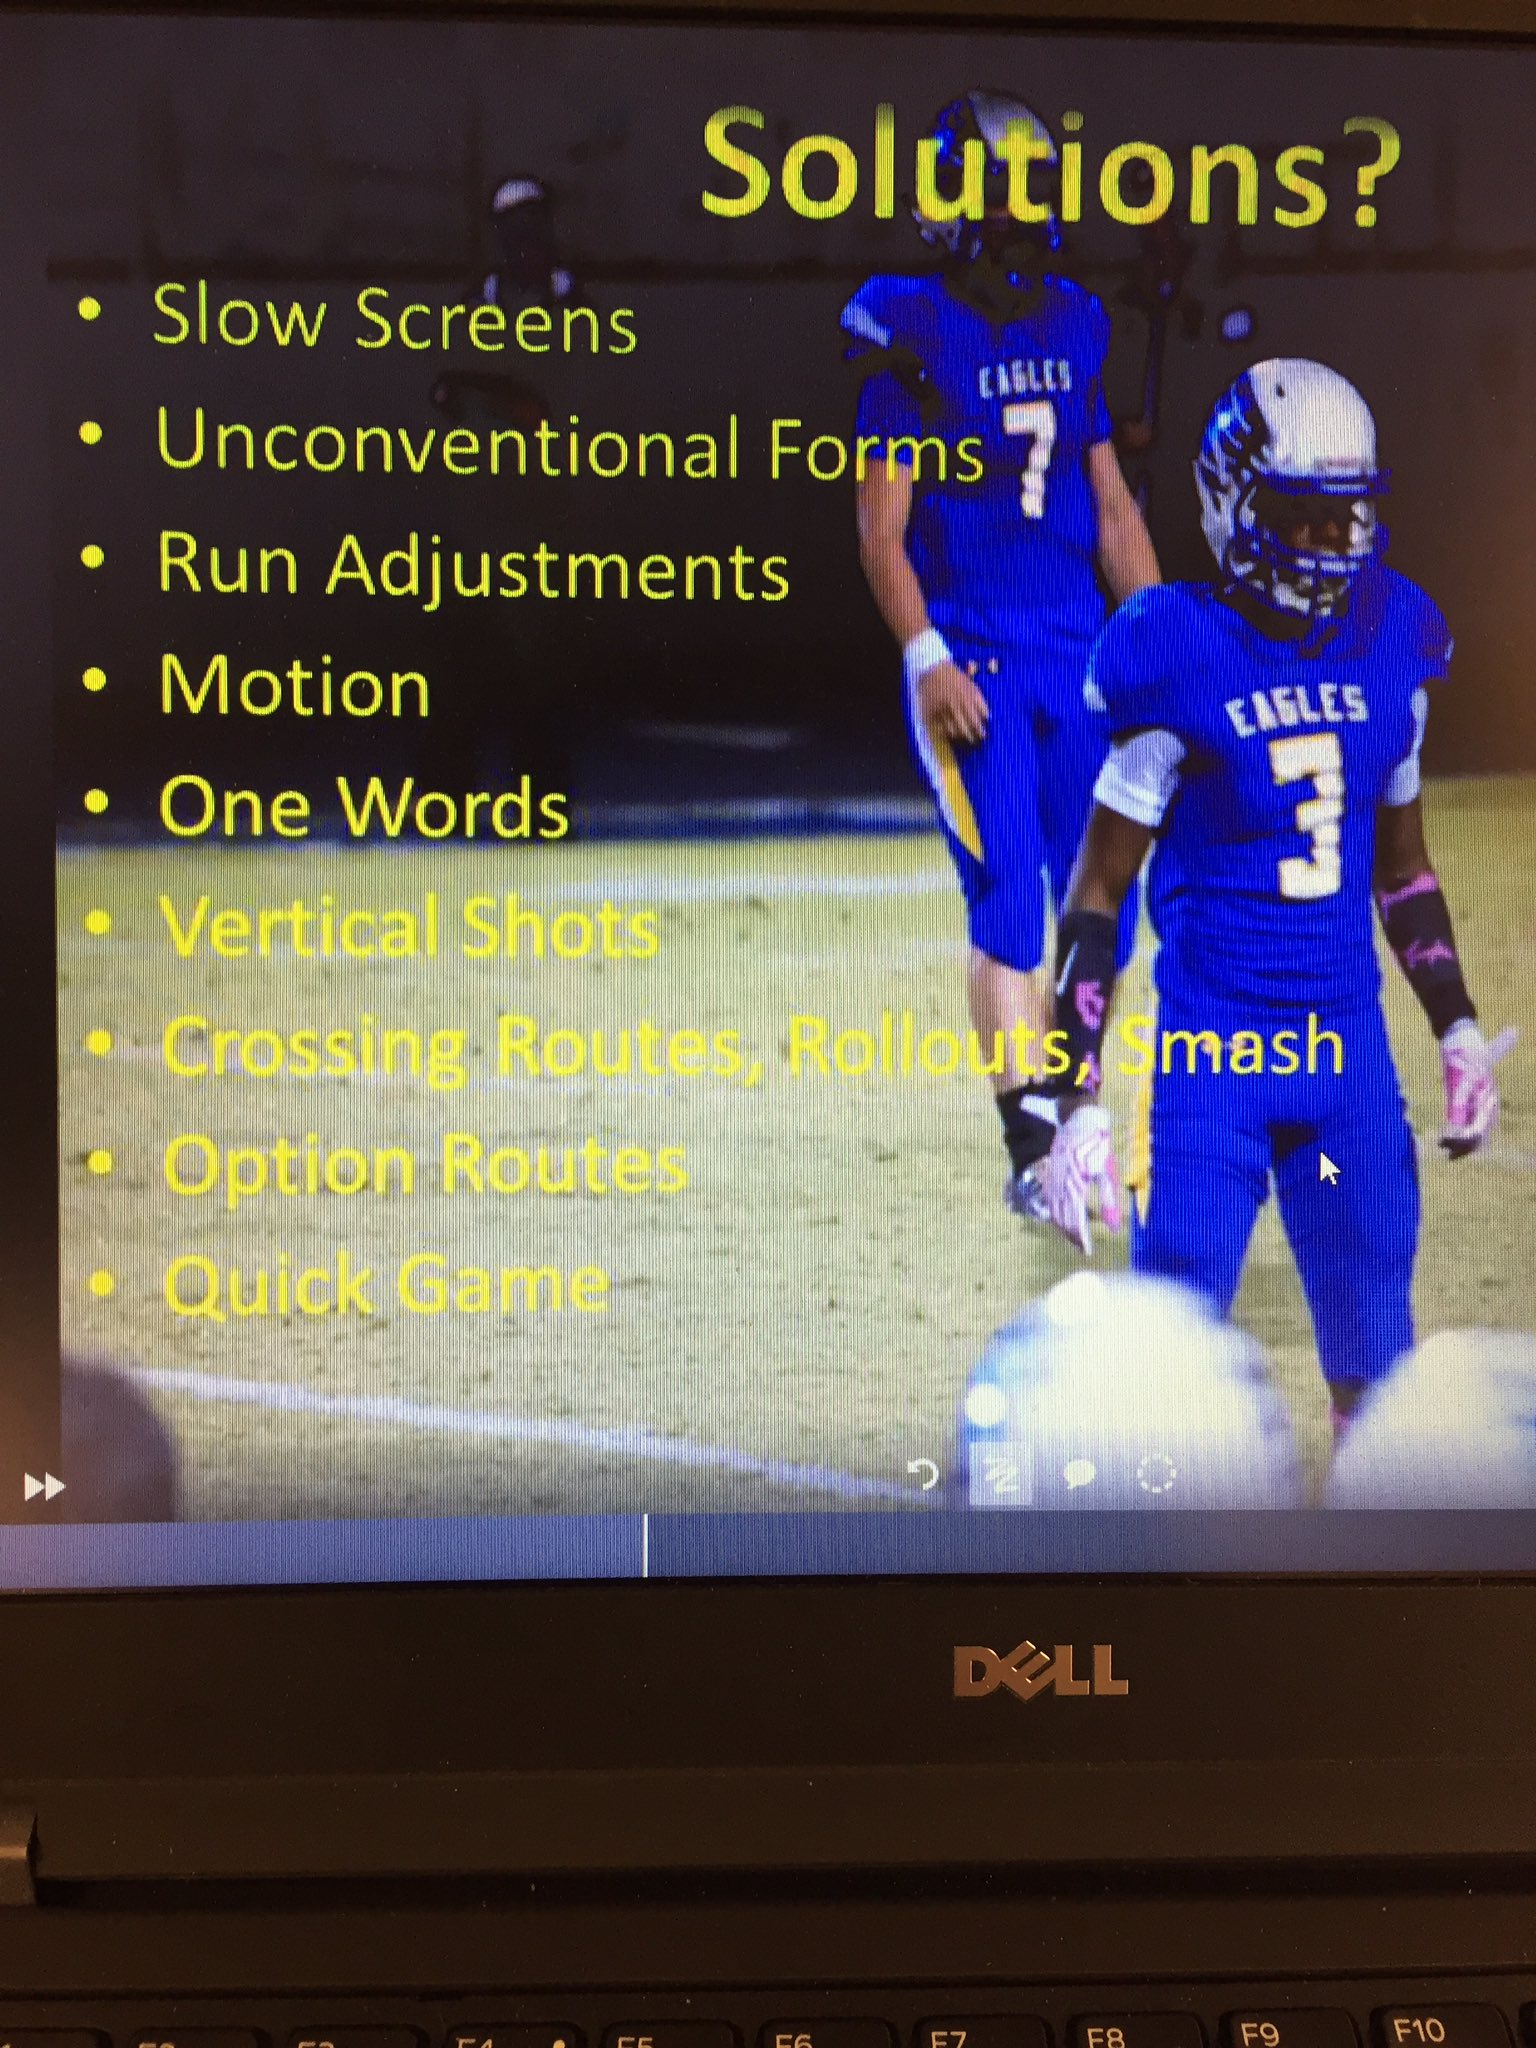 #Cover1BeaterMonday here are our solutions❗️@txhsfbchat @TxConderCoach @1coachtow1n @ITPylon @SpreadOffense @Process2Win @All22ChalkTalk https://t.co/r6PGW1vKTc